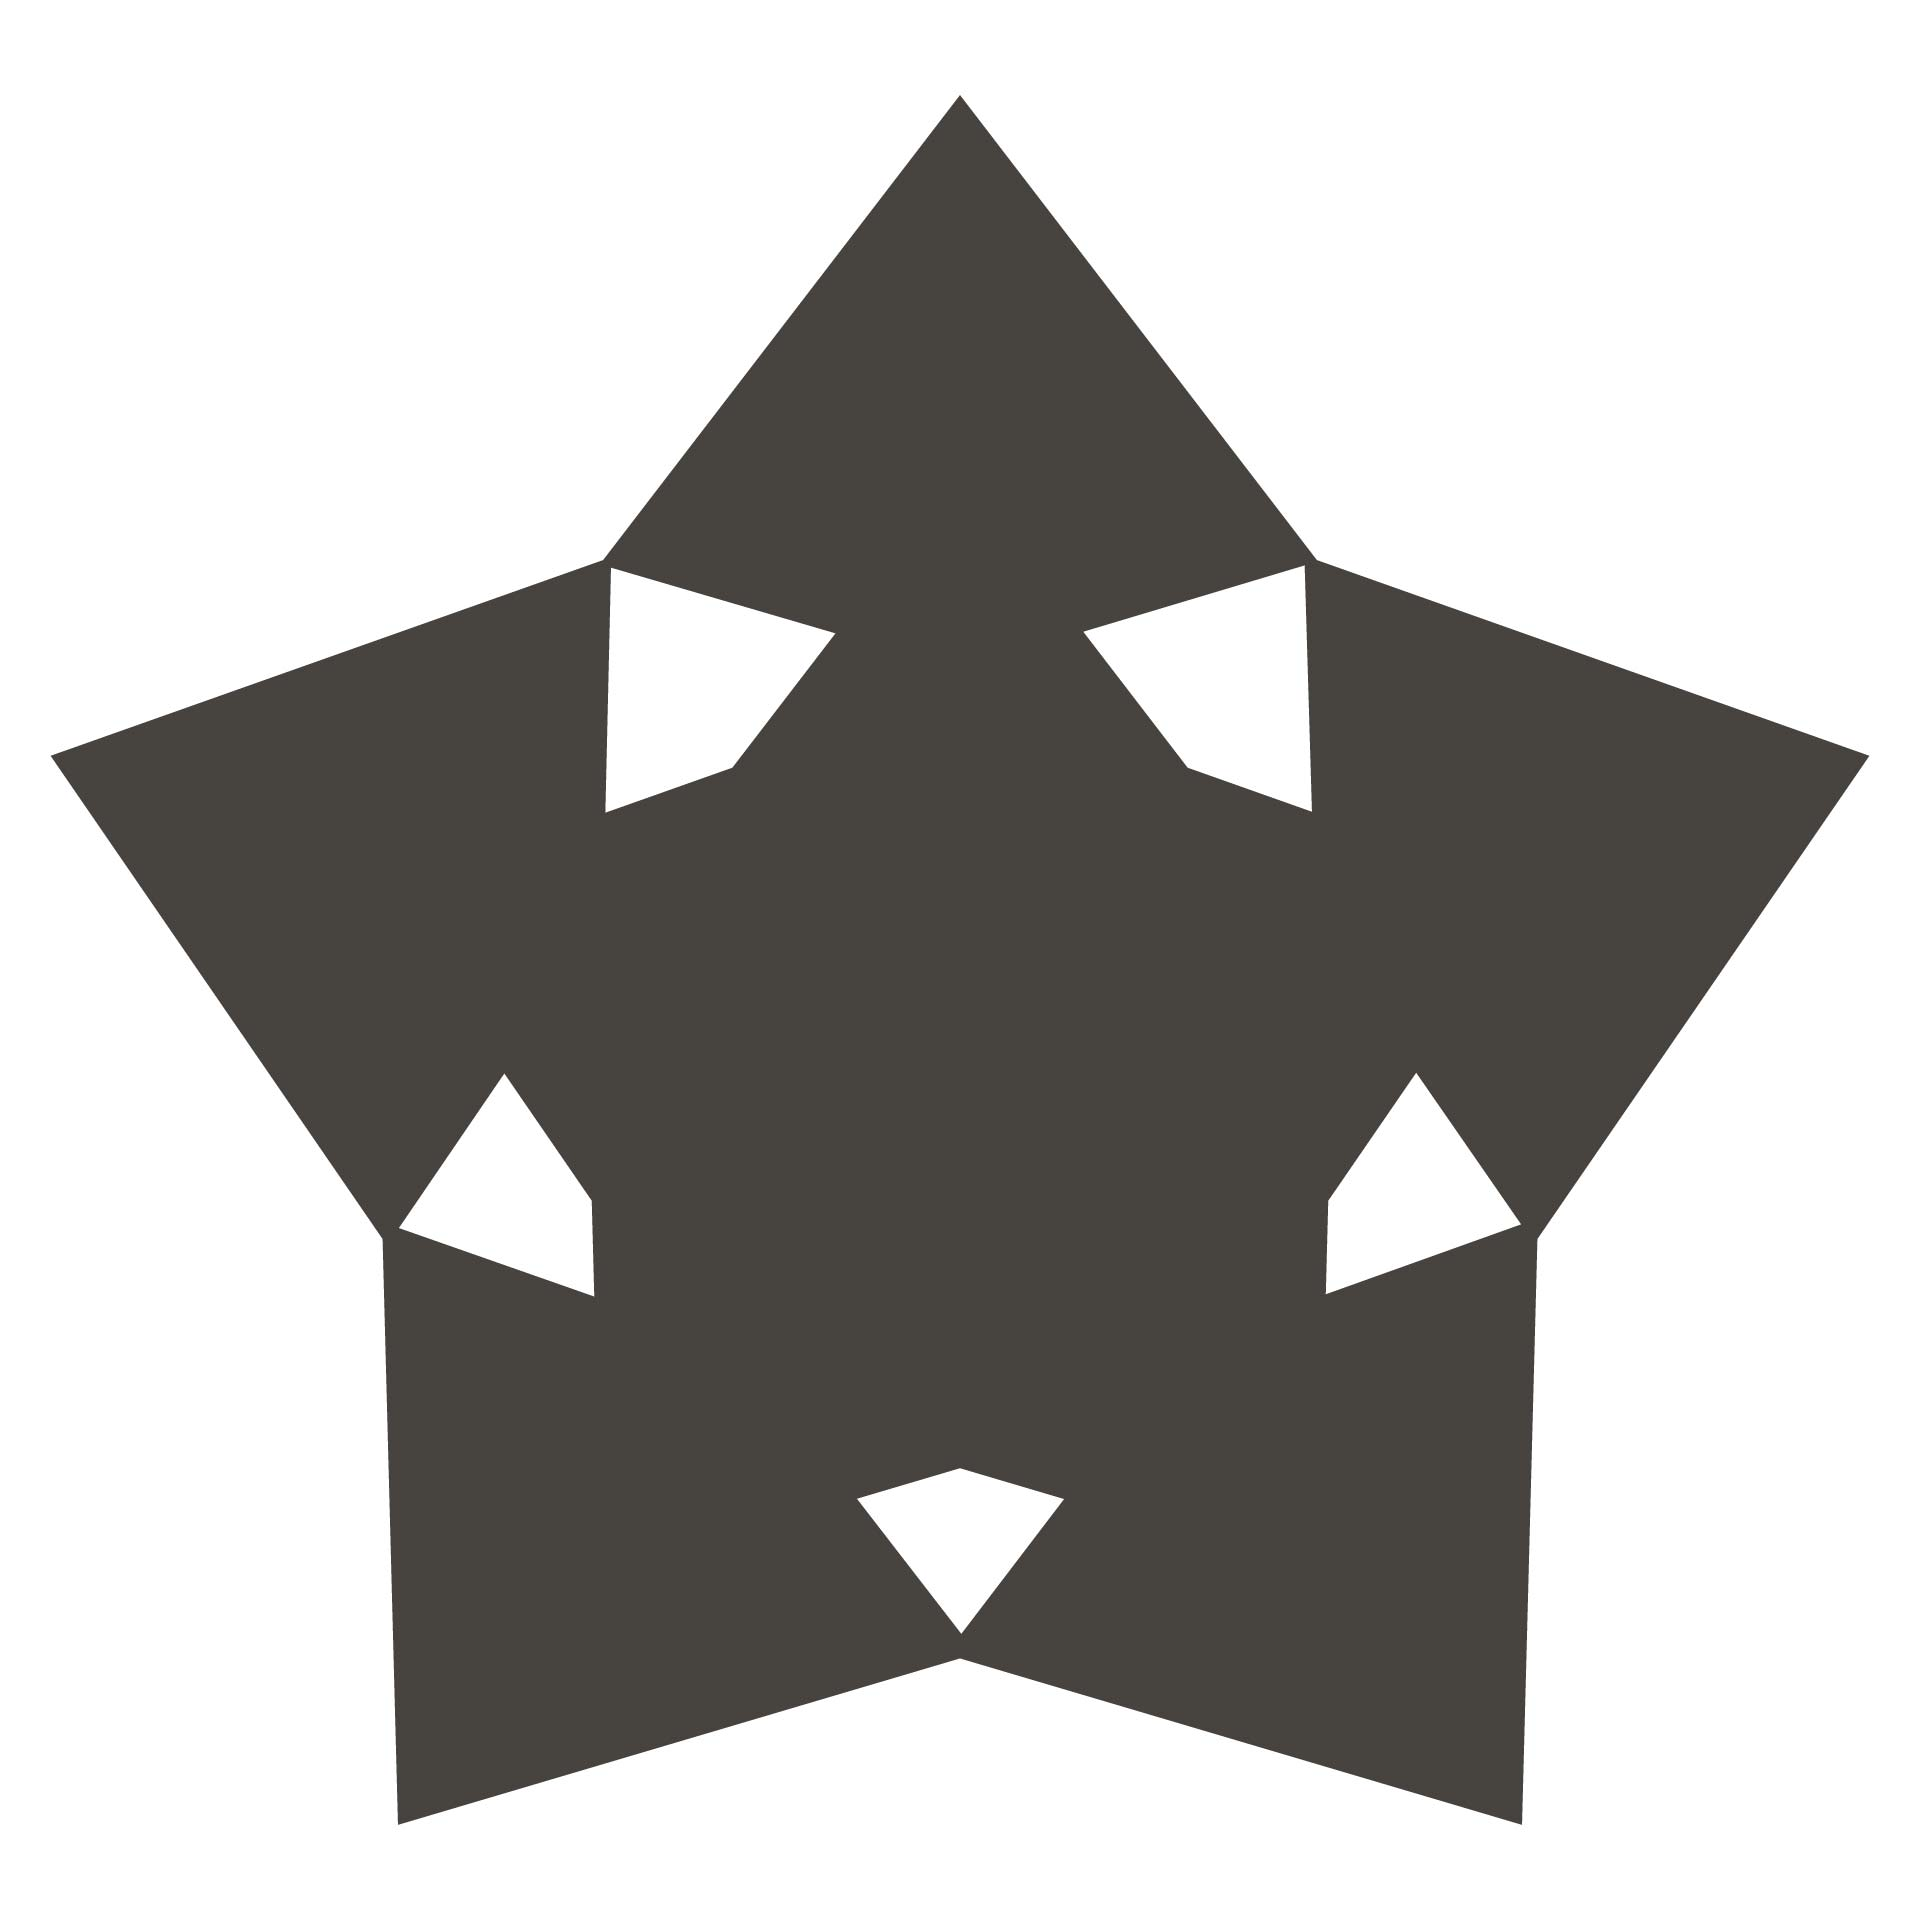 Star Picture To Color 9 Best Images of Big Star Template Printable Stars